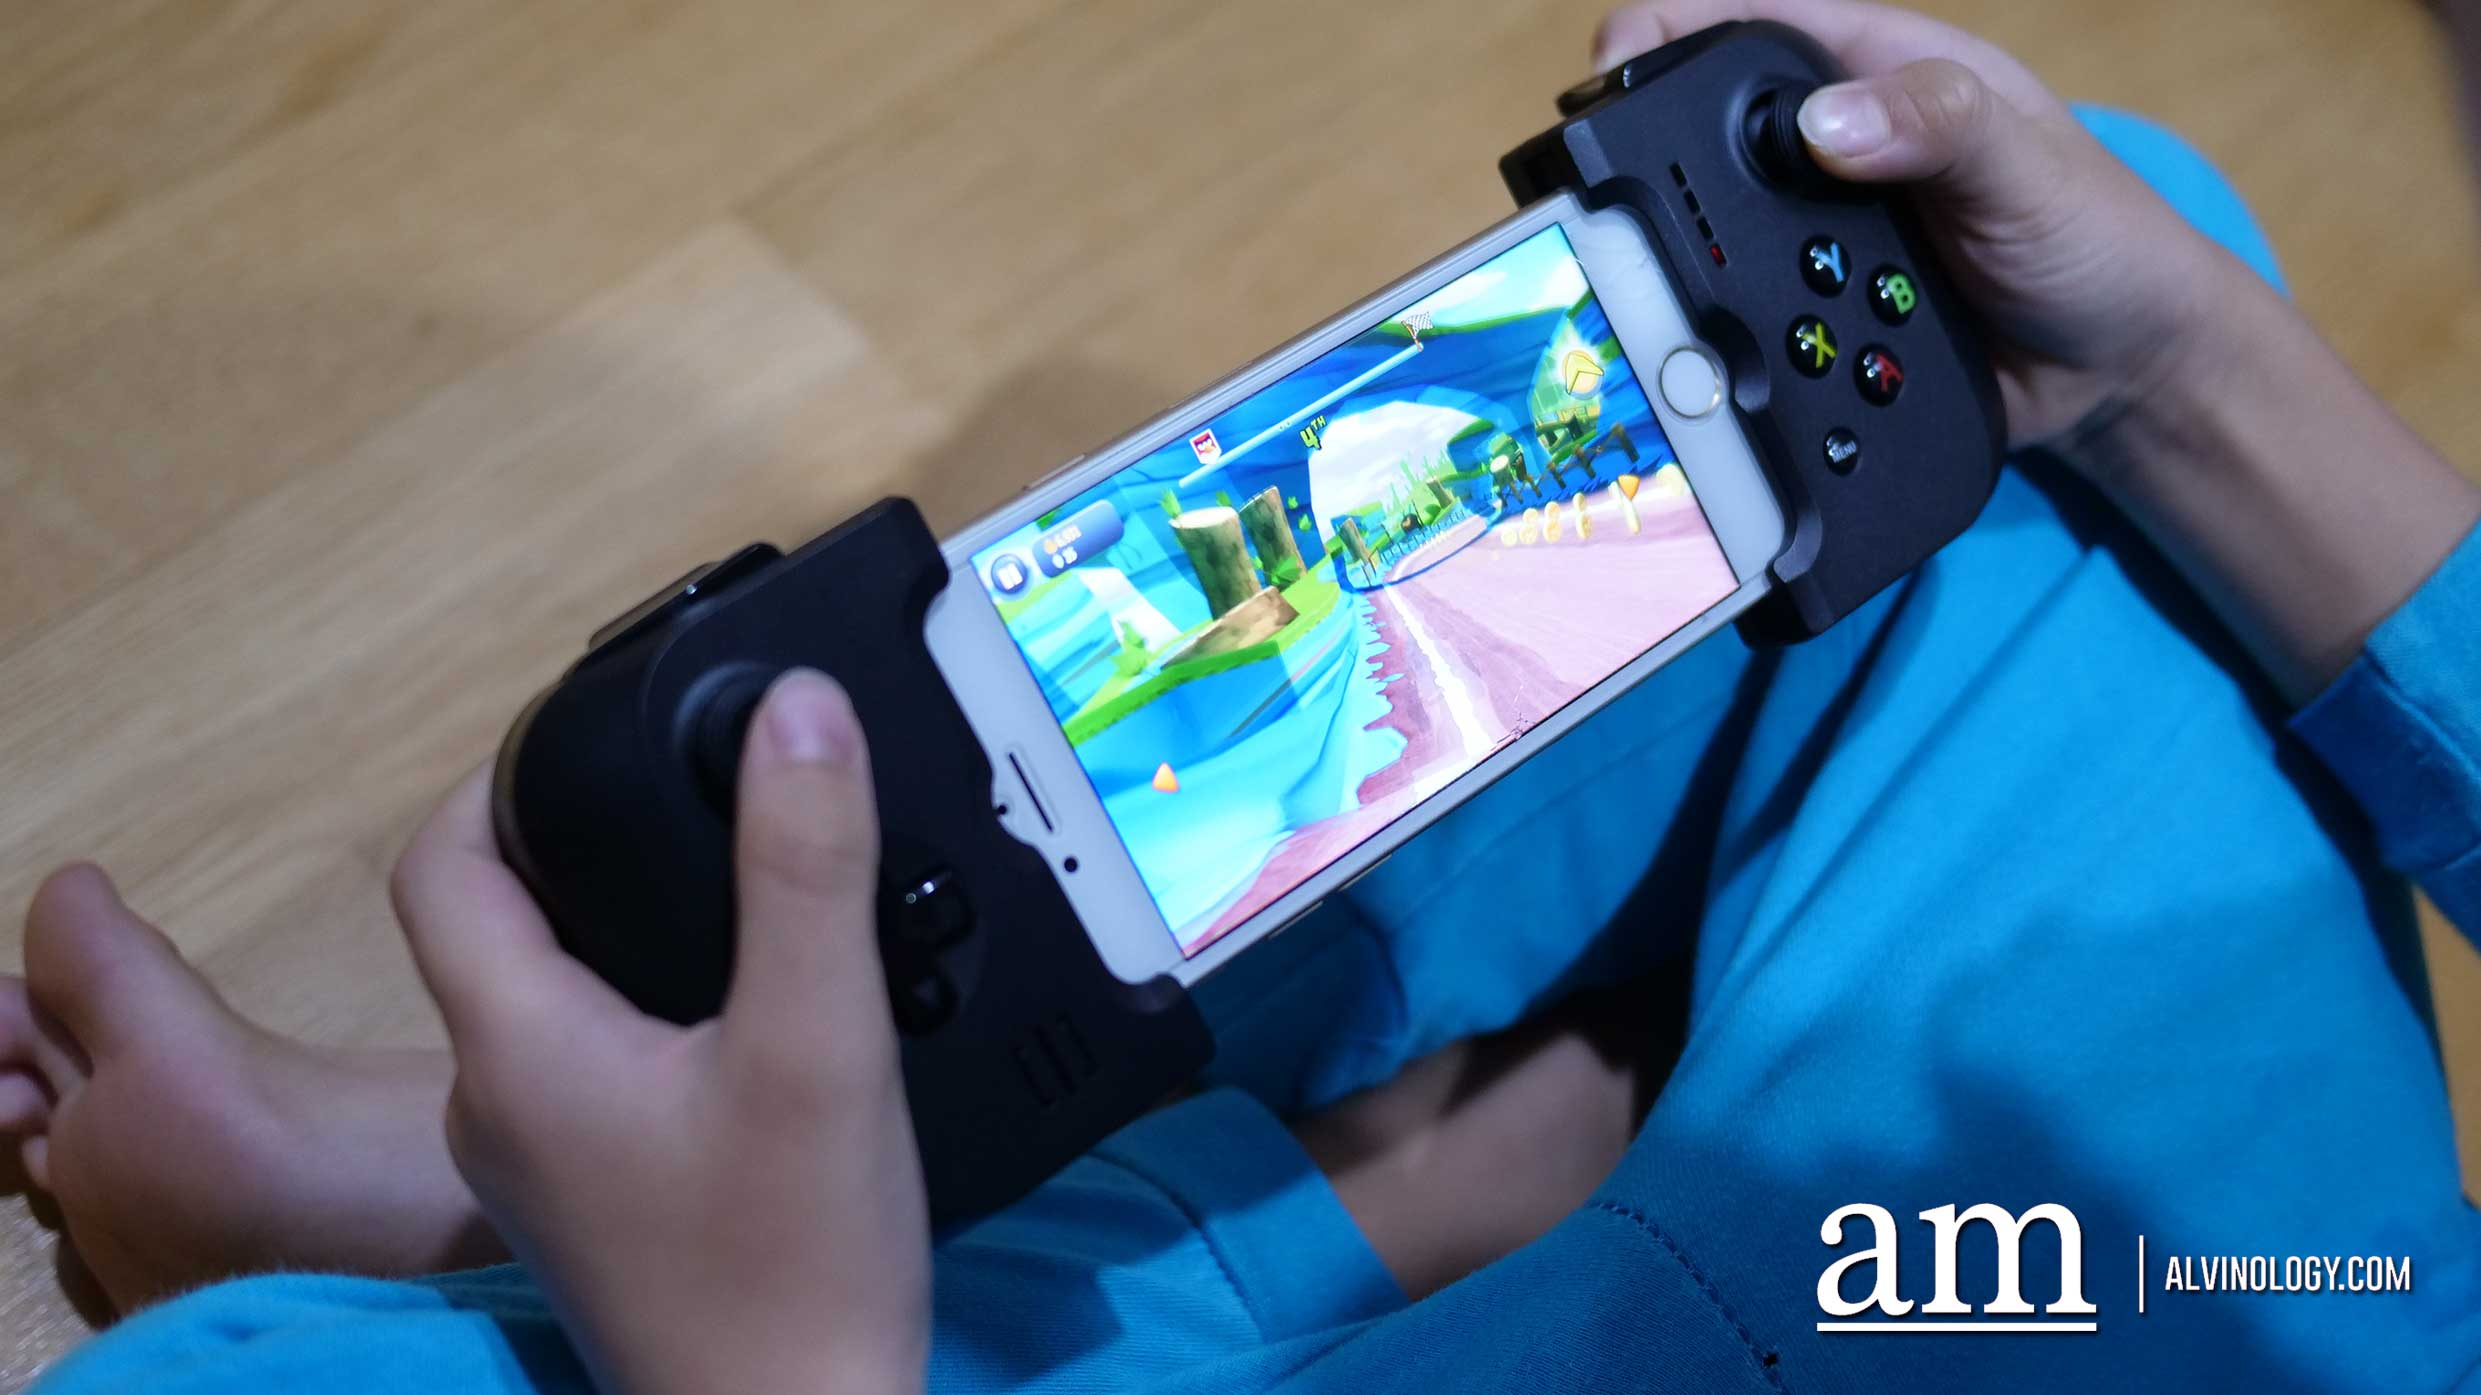 Convert your smartphone into a portable gaming device with Gamevice - Alvinology